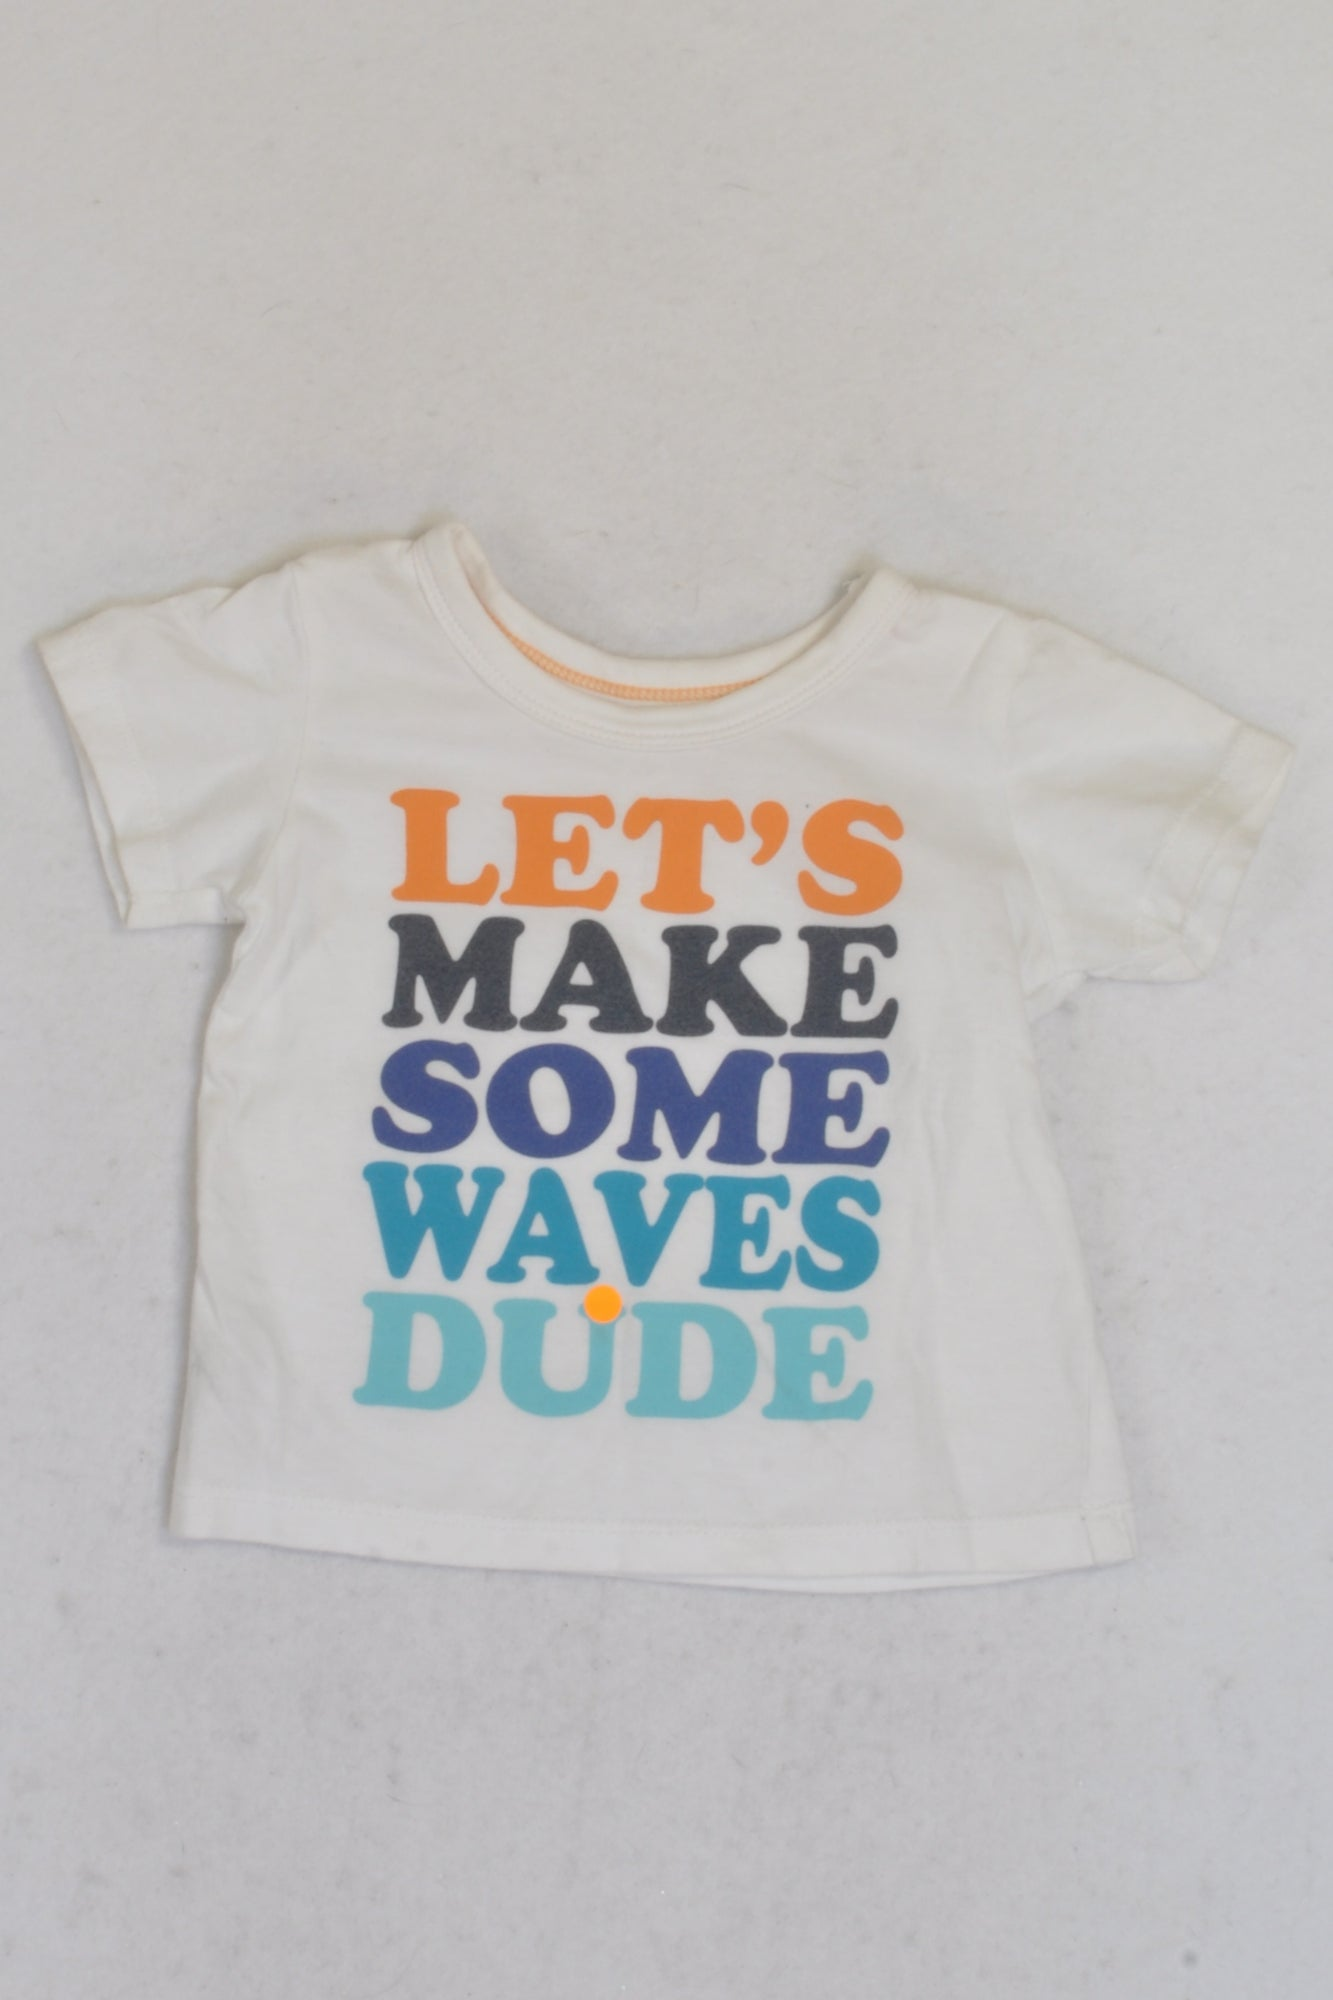 Woolworths Lets Make Some Waves Dude T-shirt Boys 3-6 months